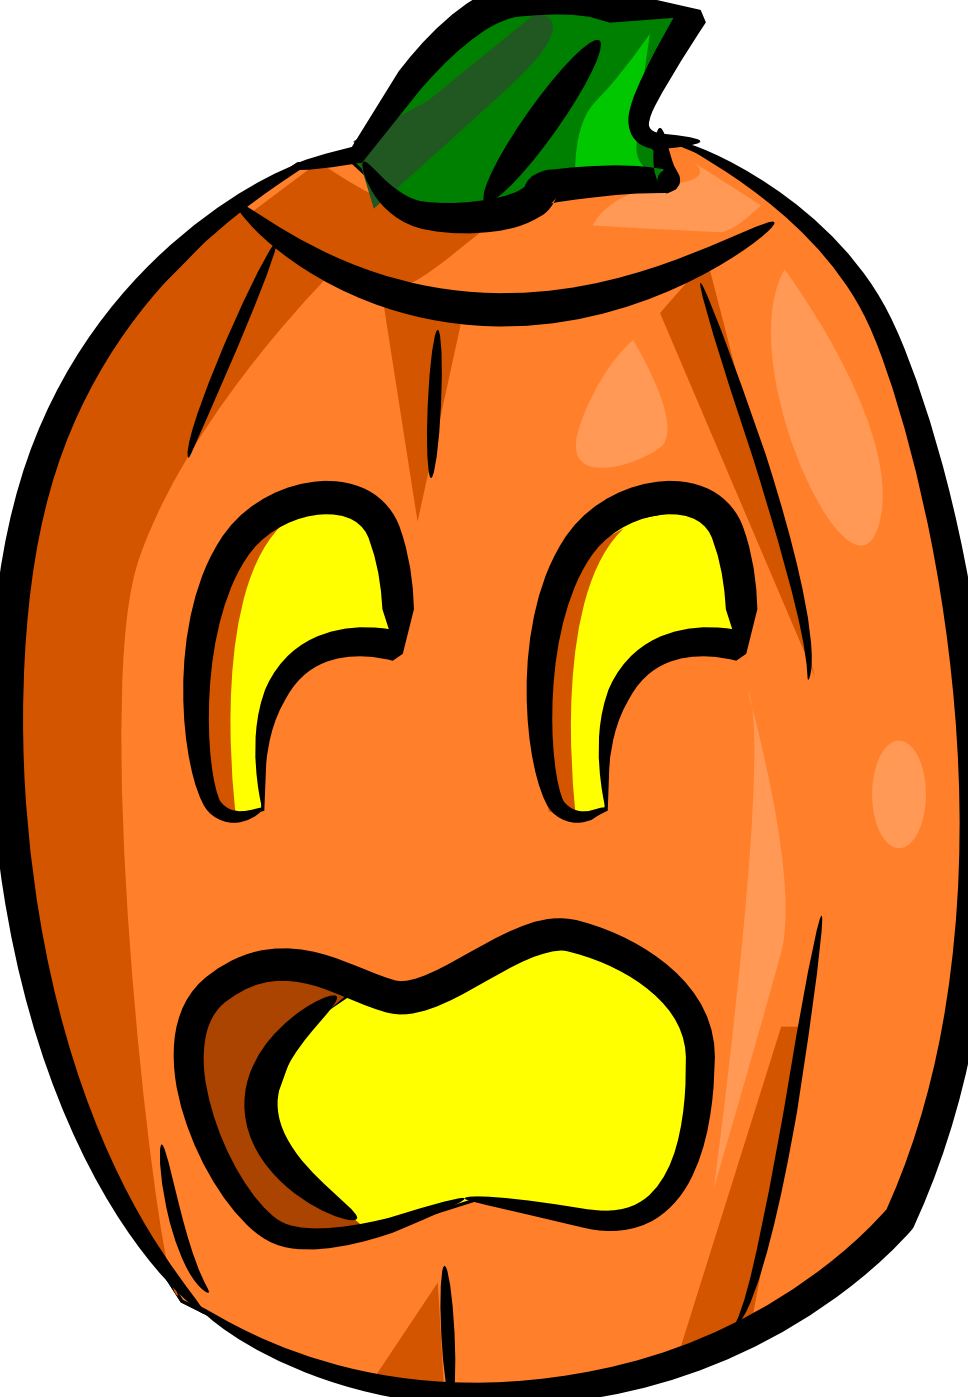 968x1397 Jack O Lantern Totally Free Clip Art